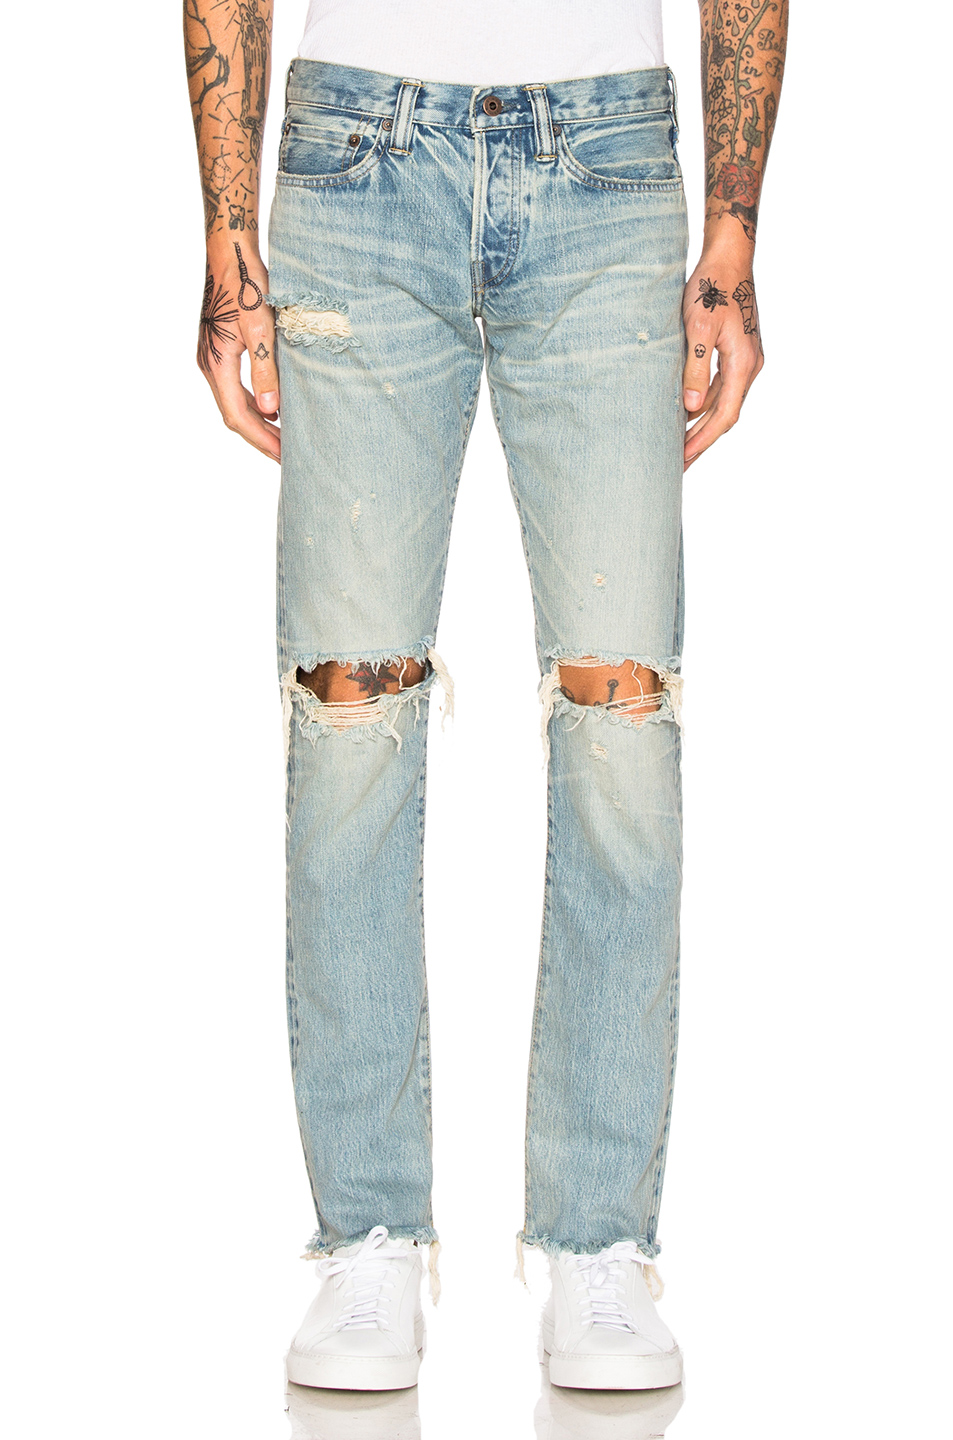 Simon Miller Aki Jeans in Blue